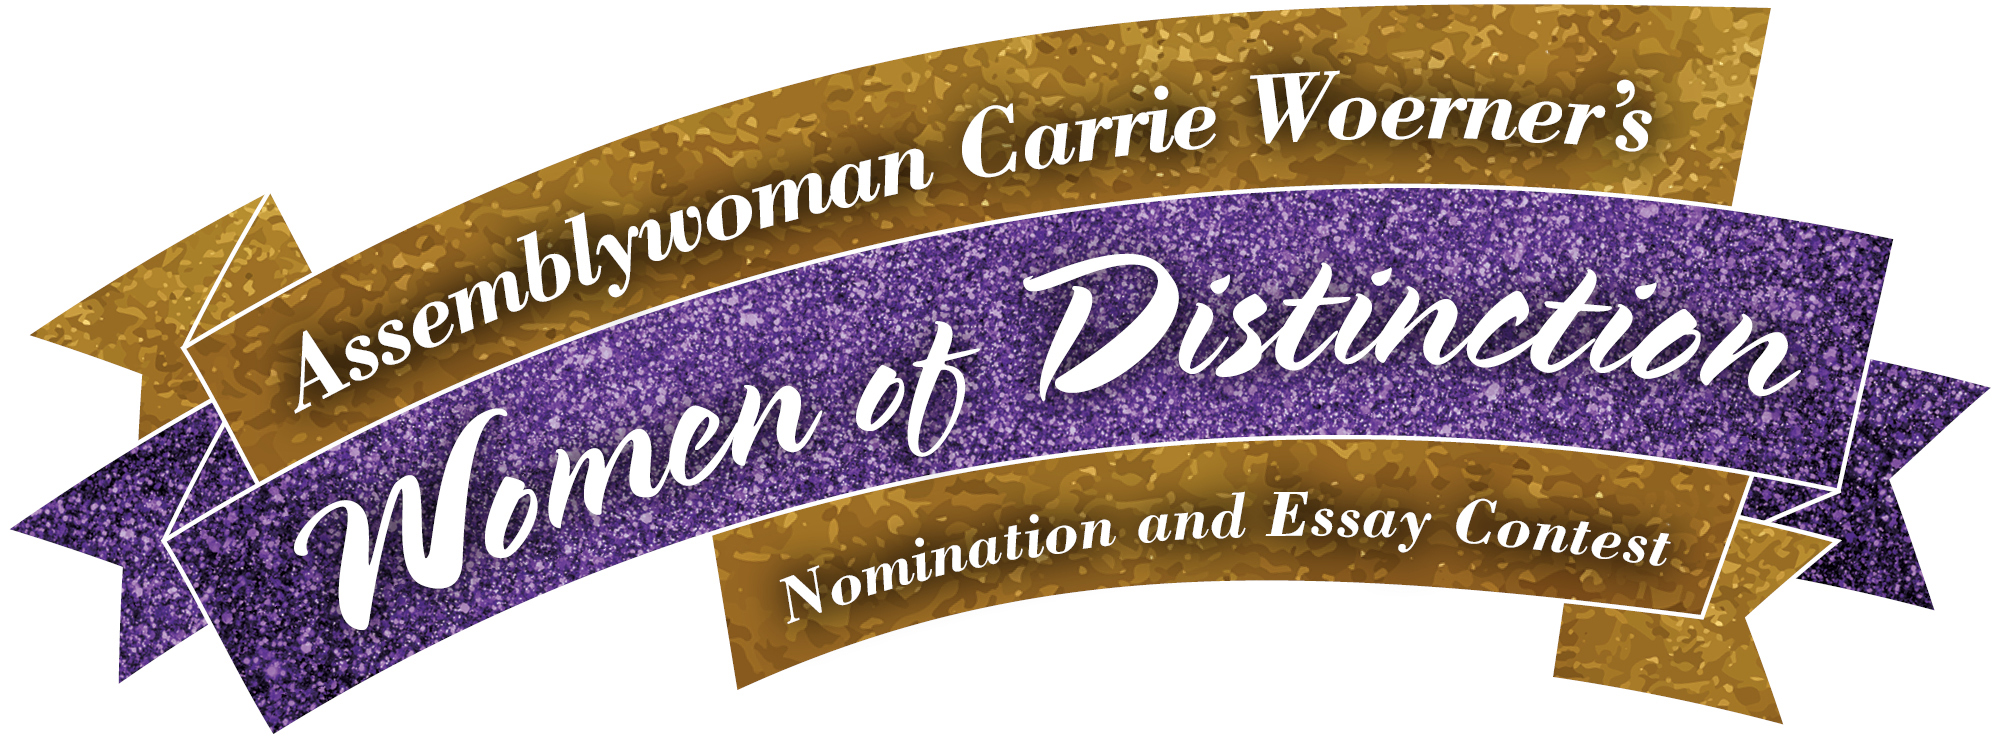 Assemblywoman Carrie Woerner's Women of Distinction Nomination and Essay Contest